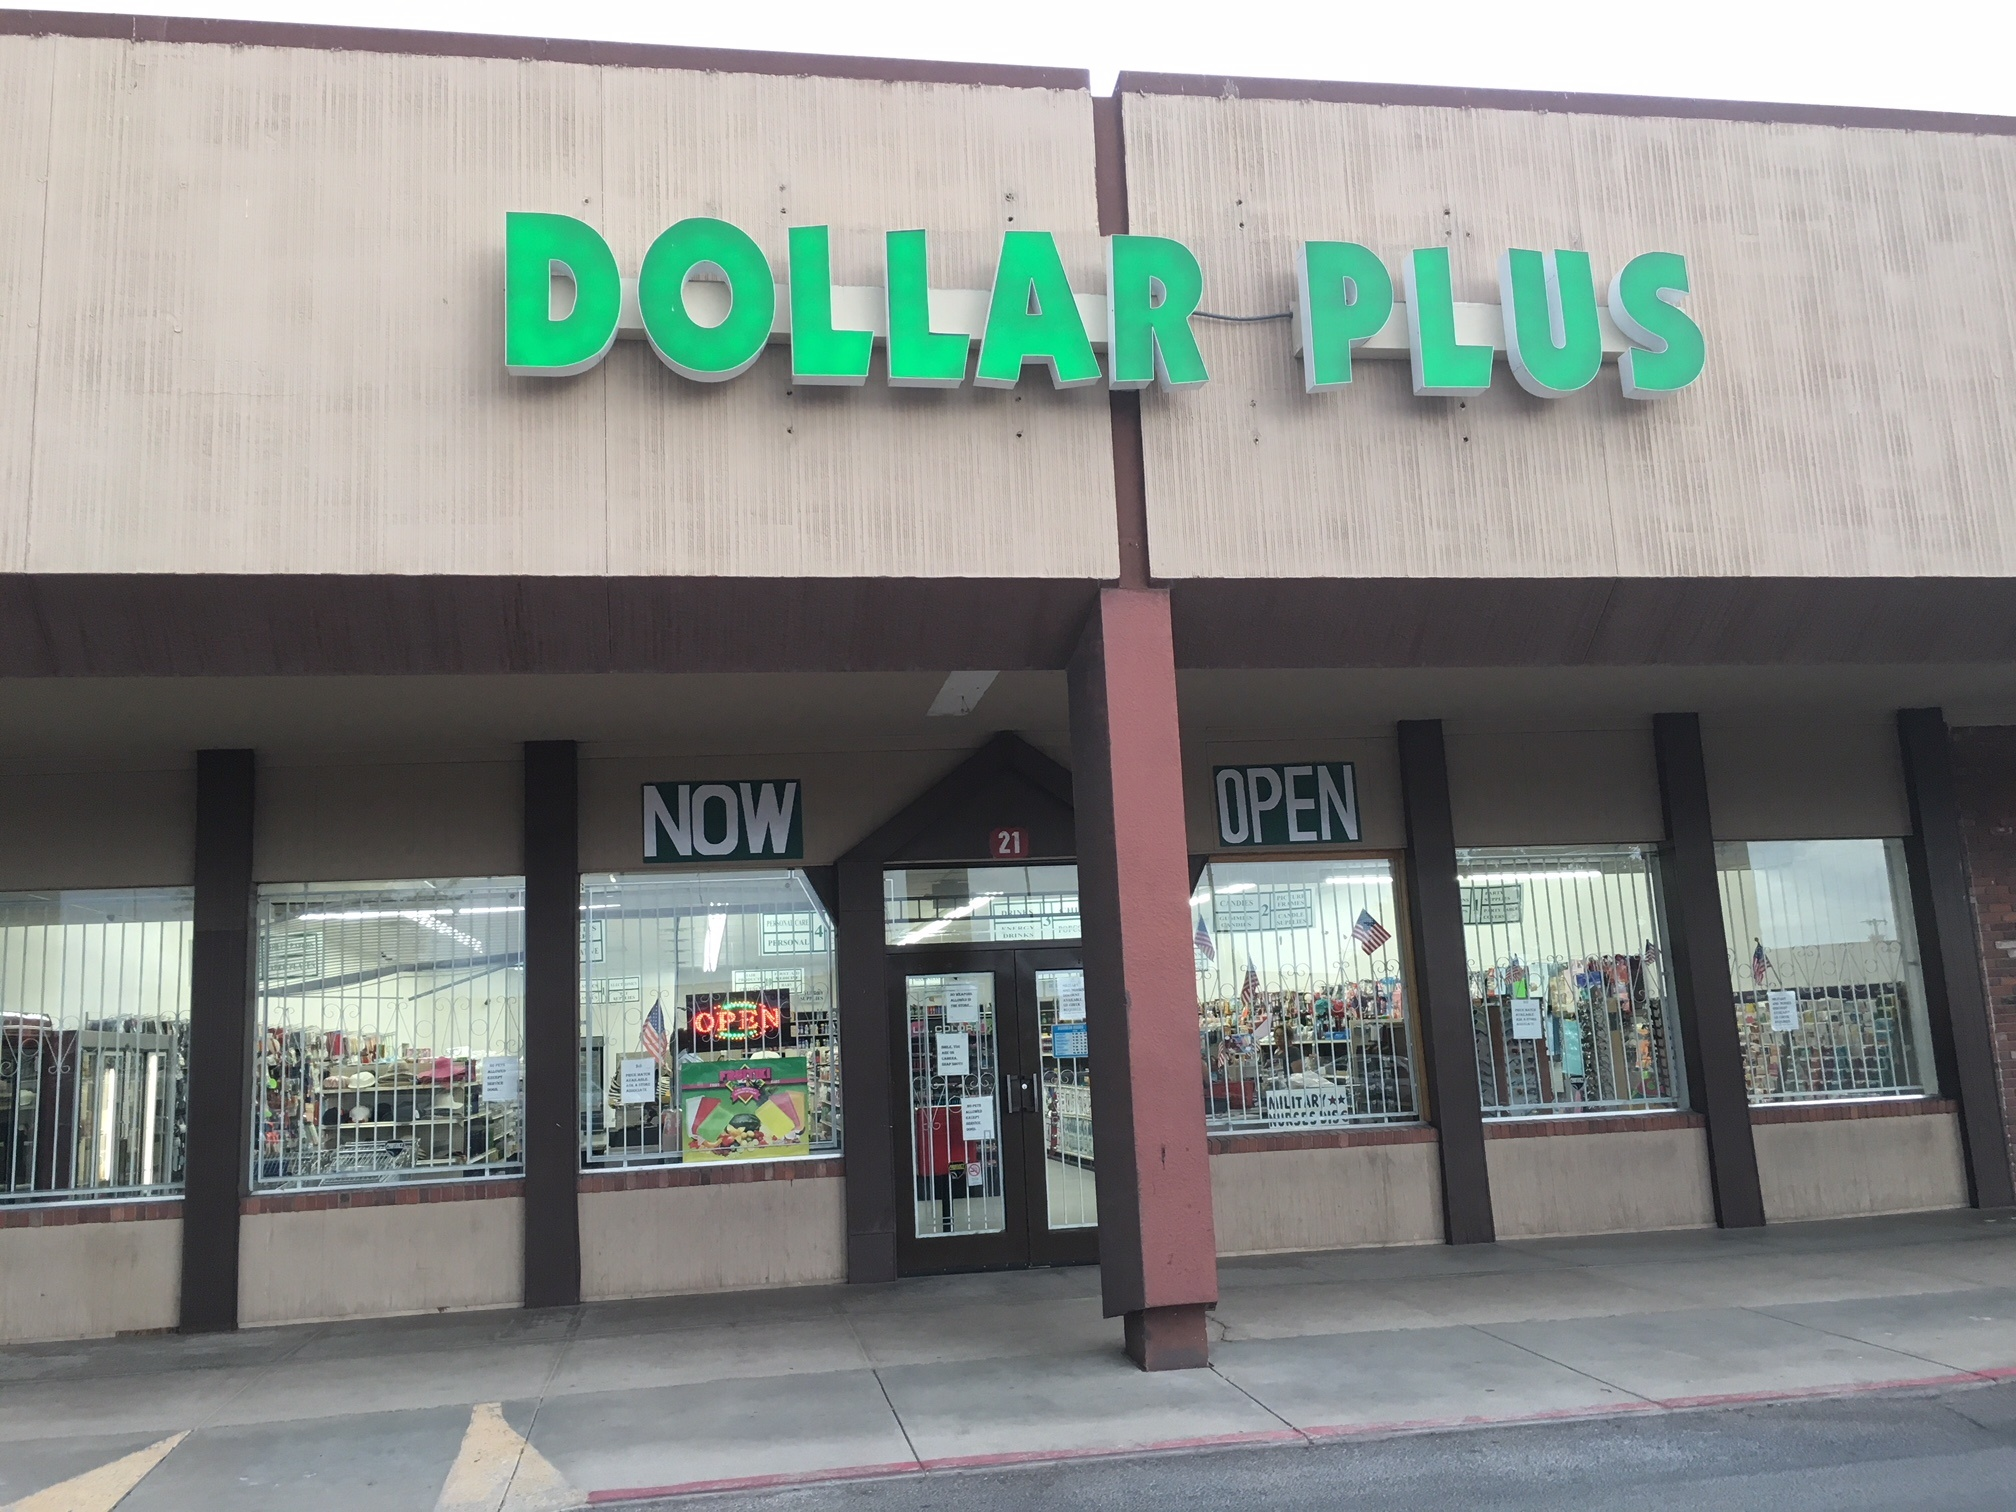 Independent Dollar Plus Store In West Texas Metro Area For Sale!